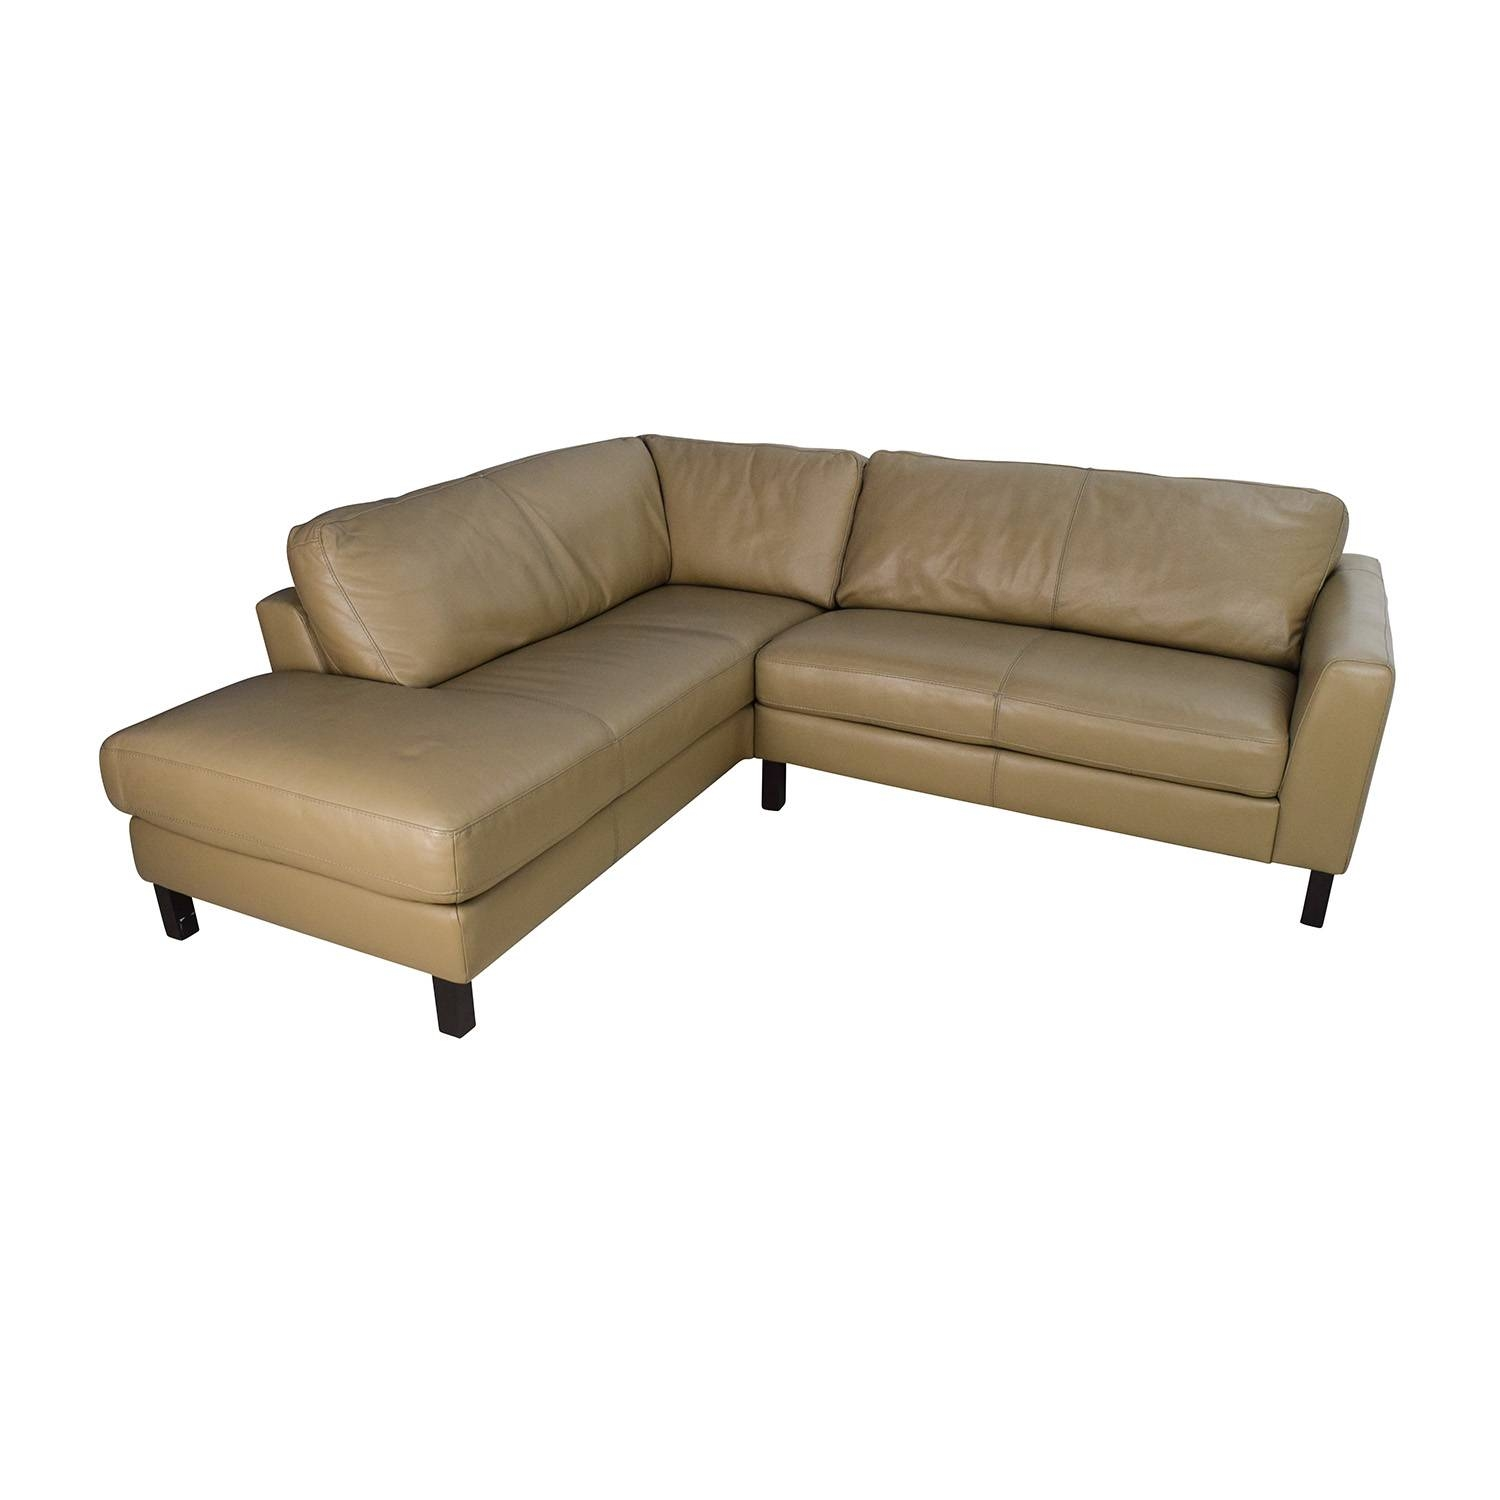 65% Off - Bloomingdales Bloomingdales Leather Sectional / Sofas regarding Bloomingdales Sofas (Image 4 of 15)